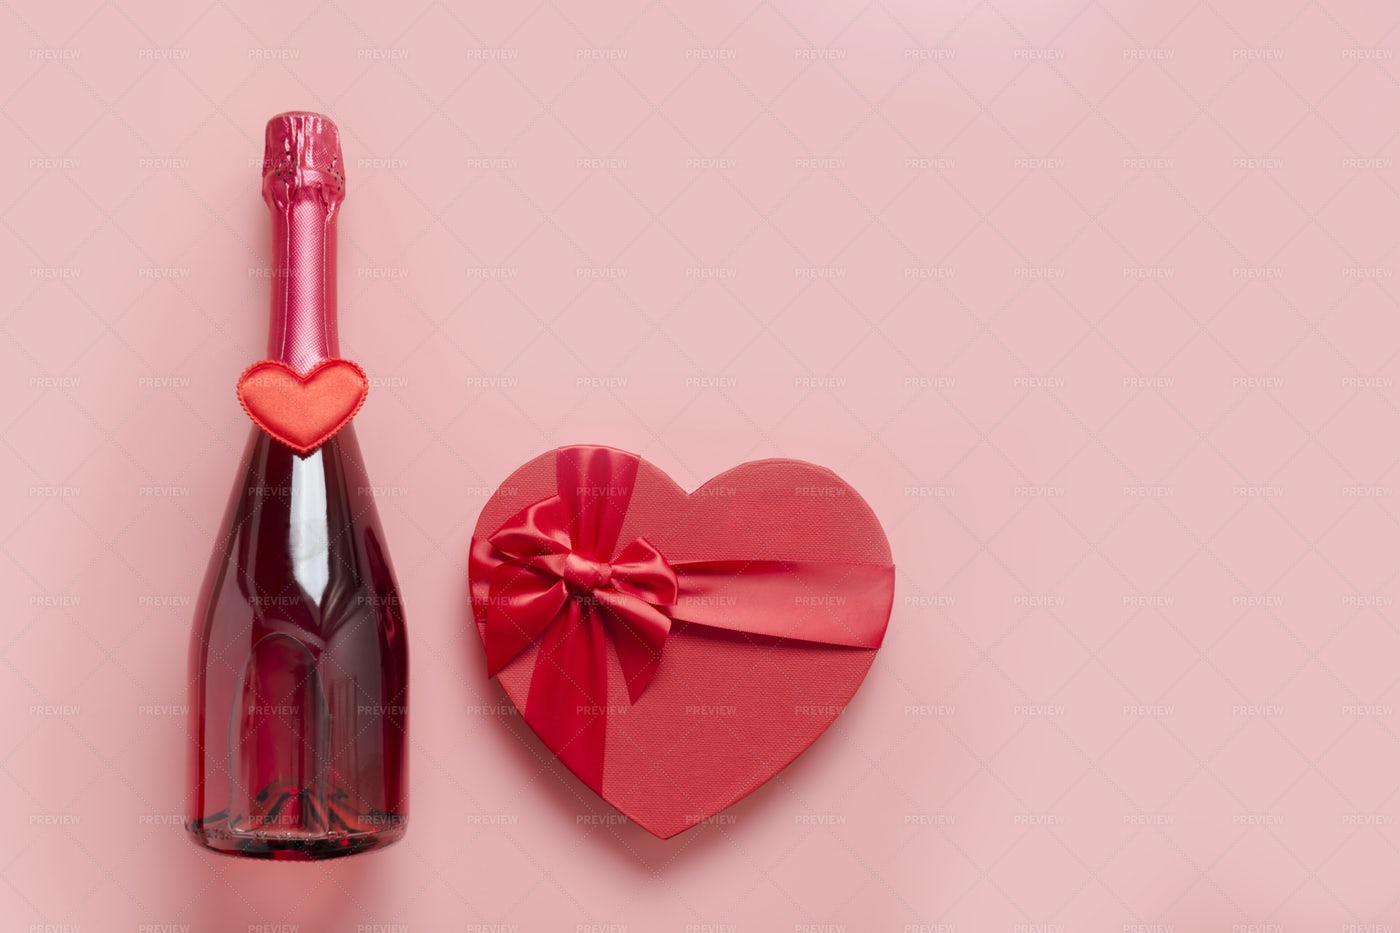 Sparkling Wine And Gift: Stock Photos